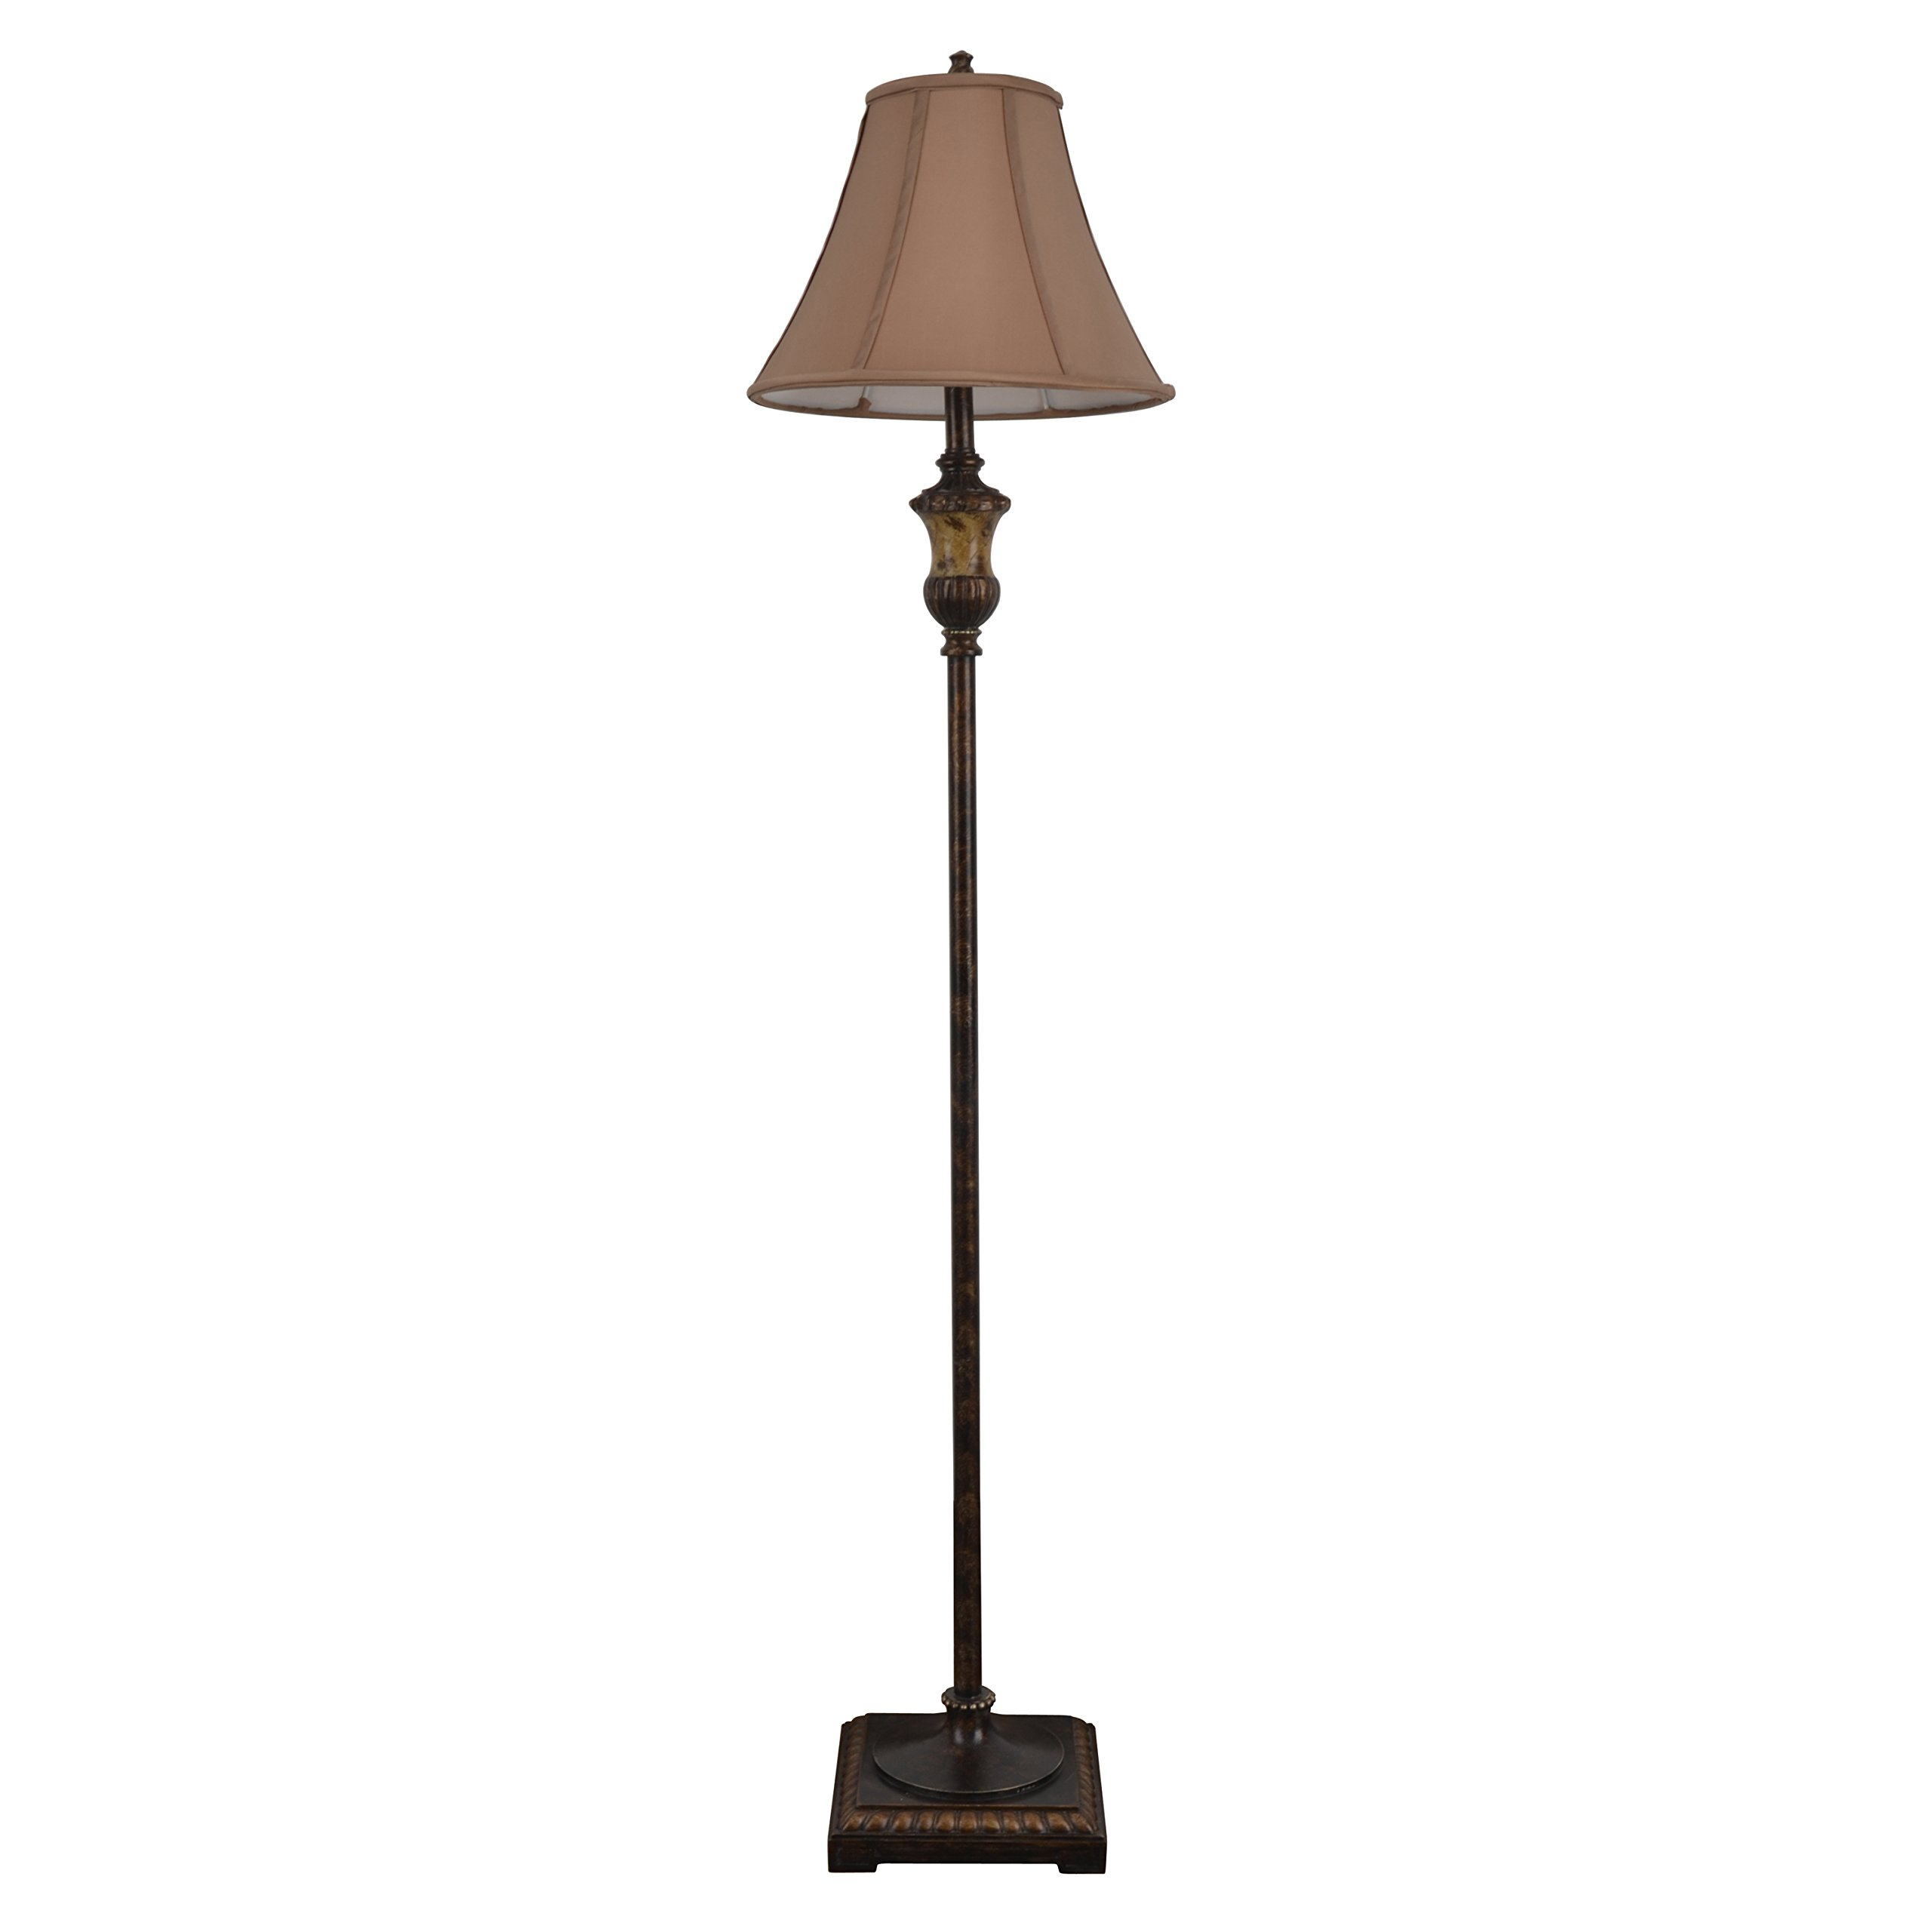 Décor Therapy PL1647 Golden Bronze Floor Lamp, 15'' x 15'' x 15''